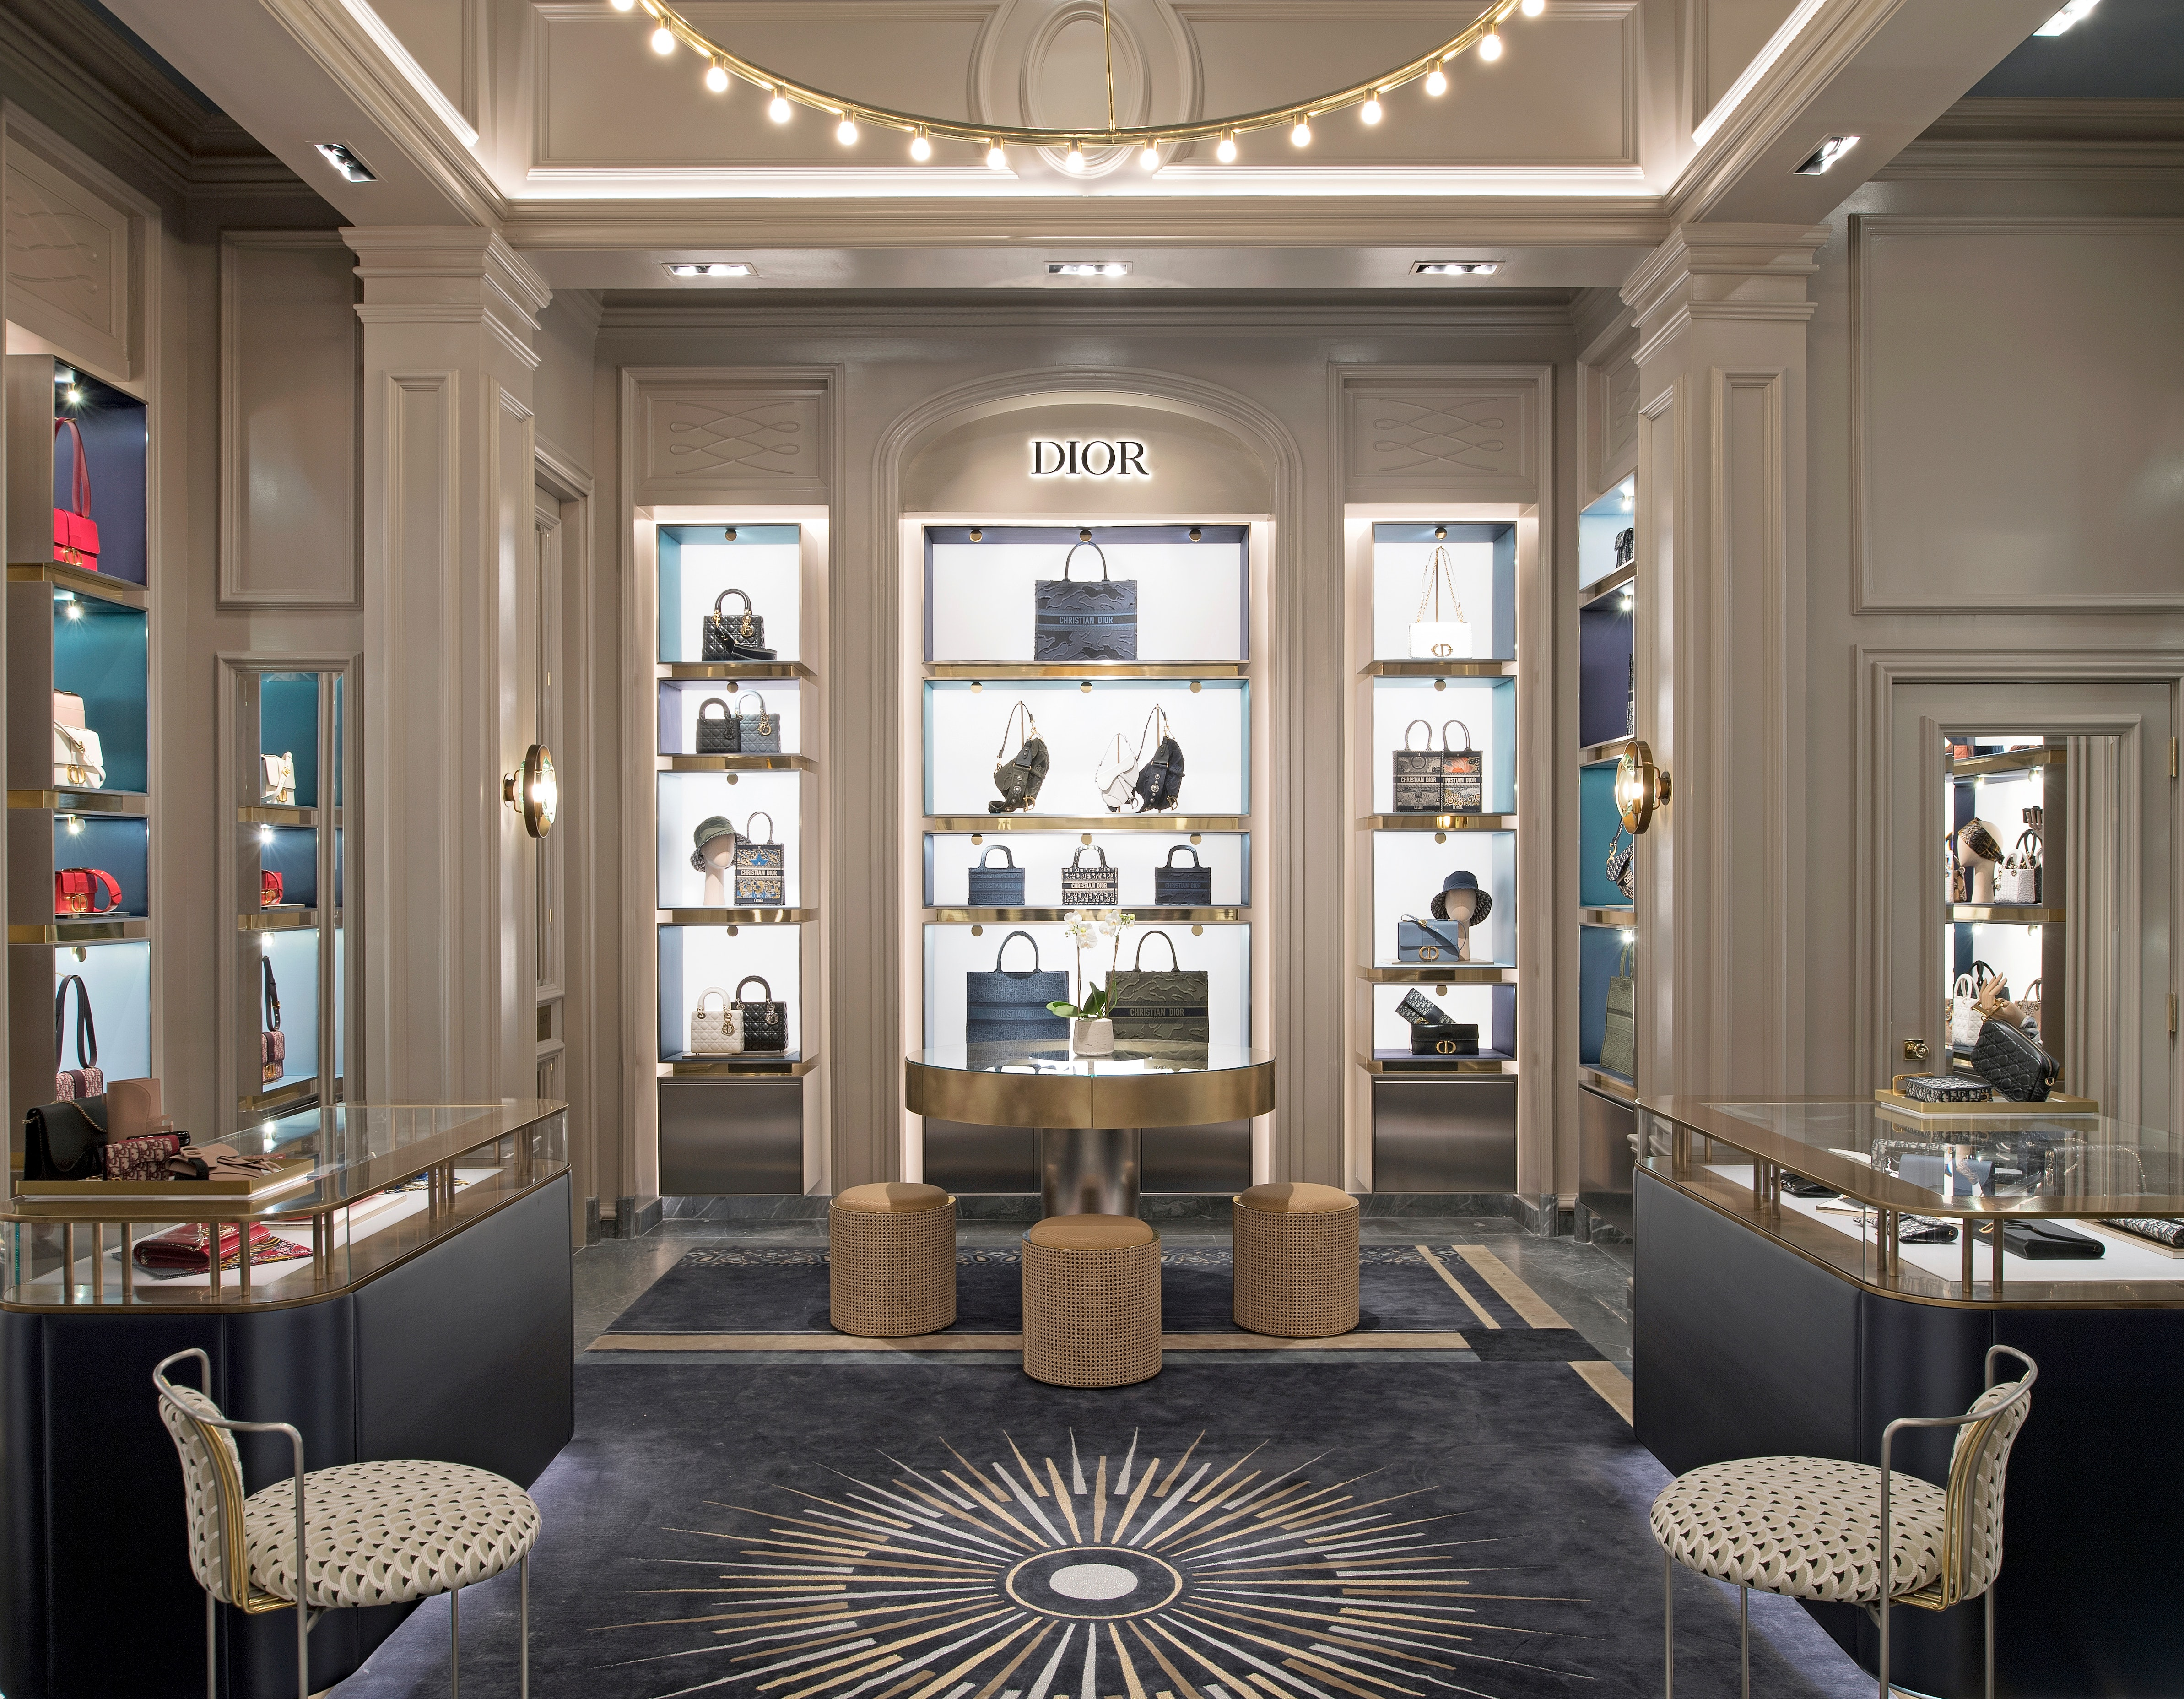 Dior's Personalization Services Are Now Available At Bergdorf Goodman (& Just In Time For The Gifting Season)